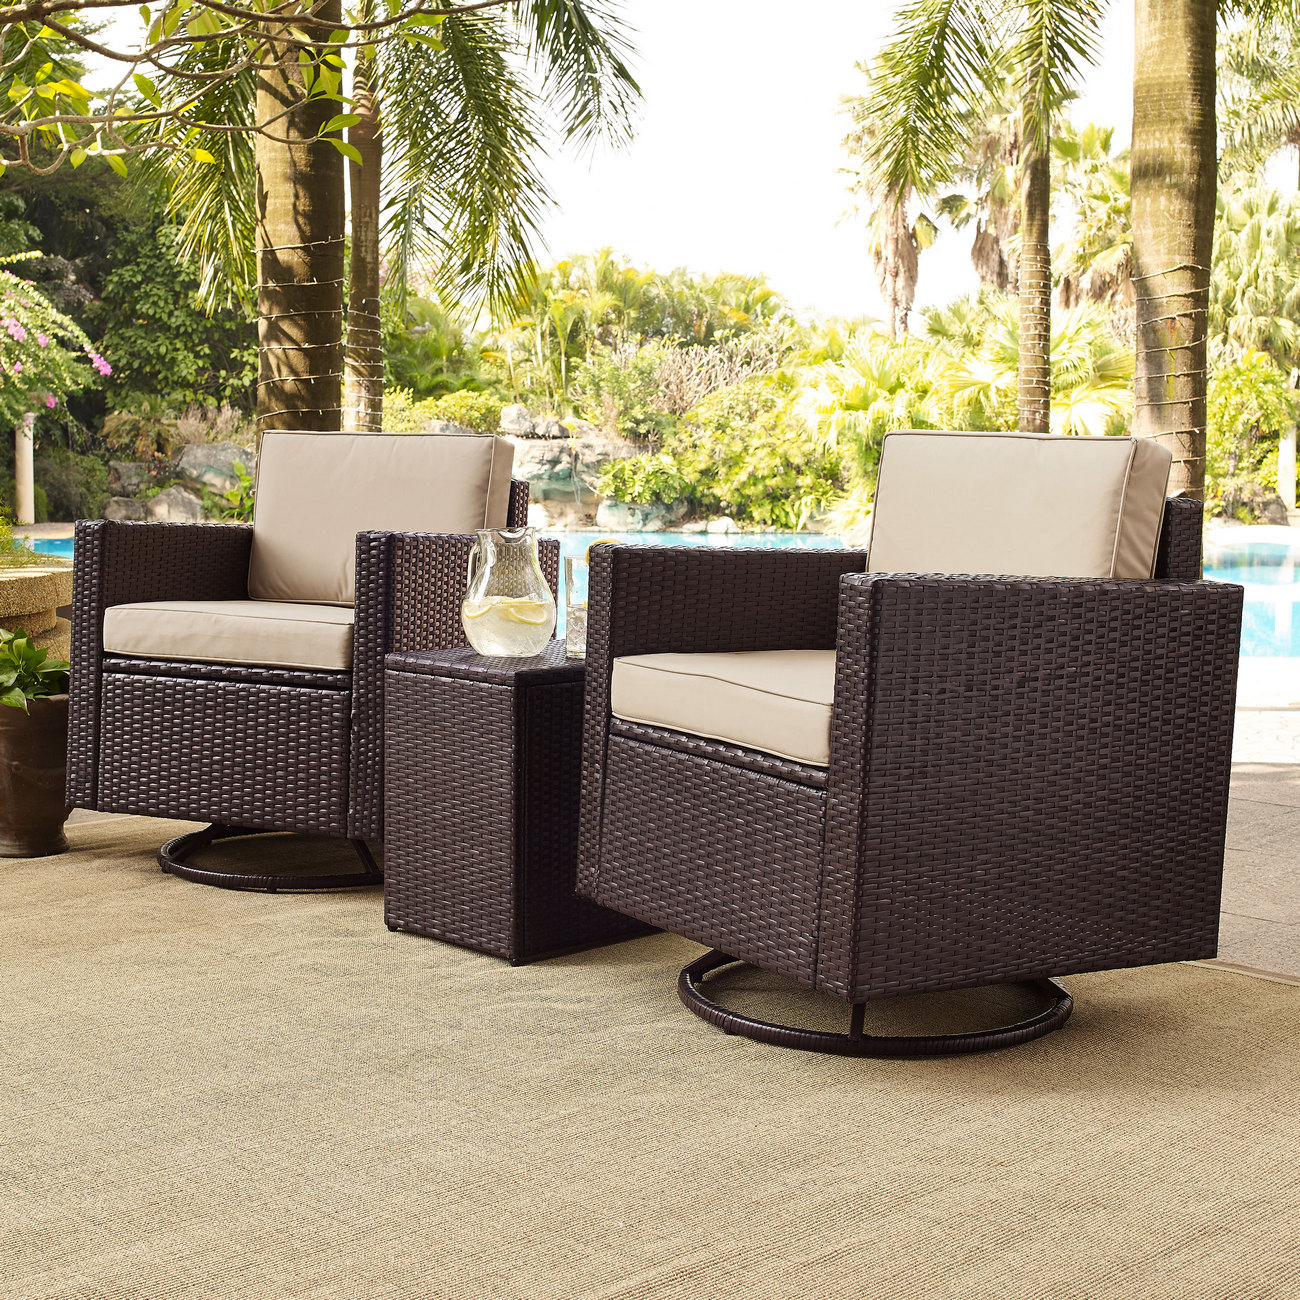 Crosley Brands Palm Harbor Outdoor Wicker Conversation Set Sand Cushions